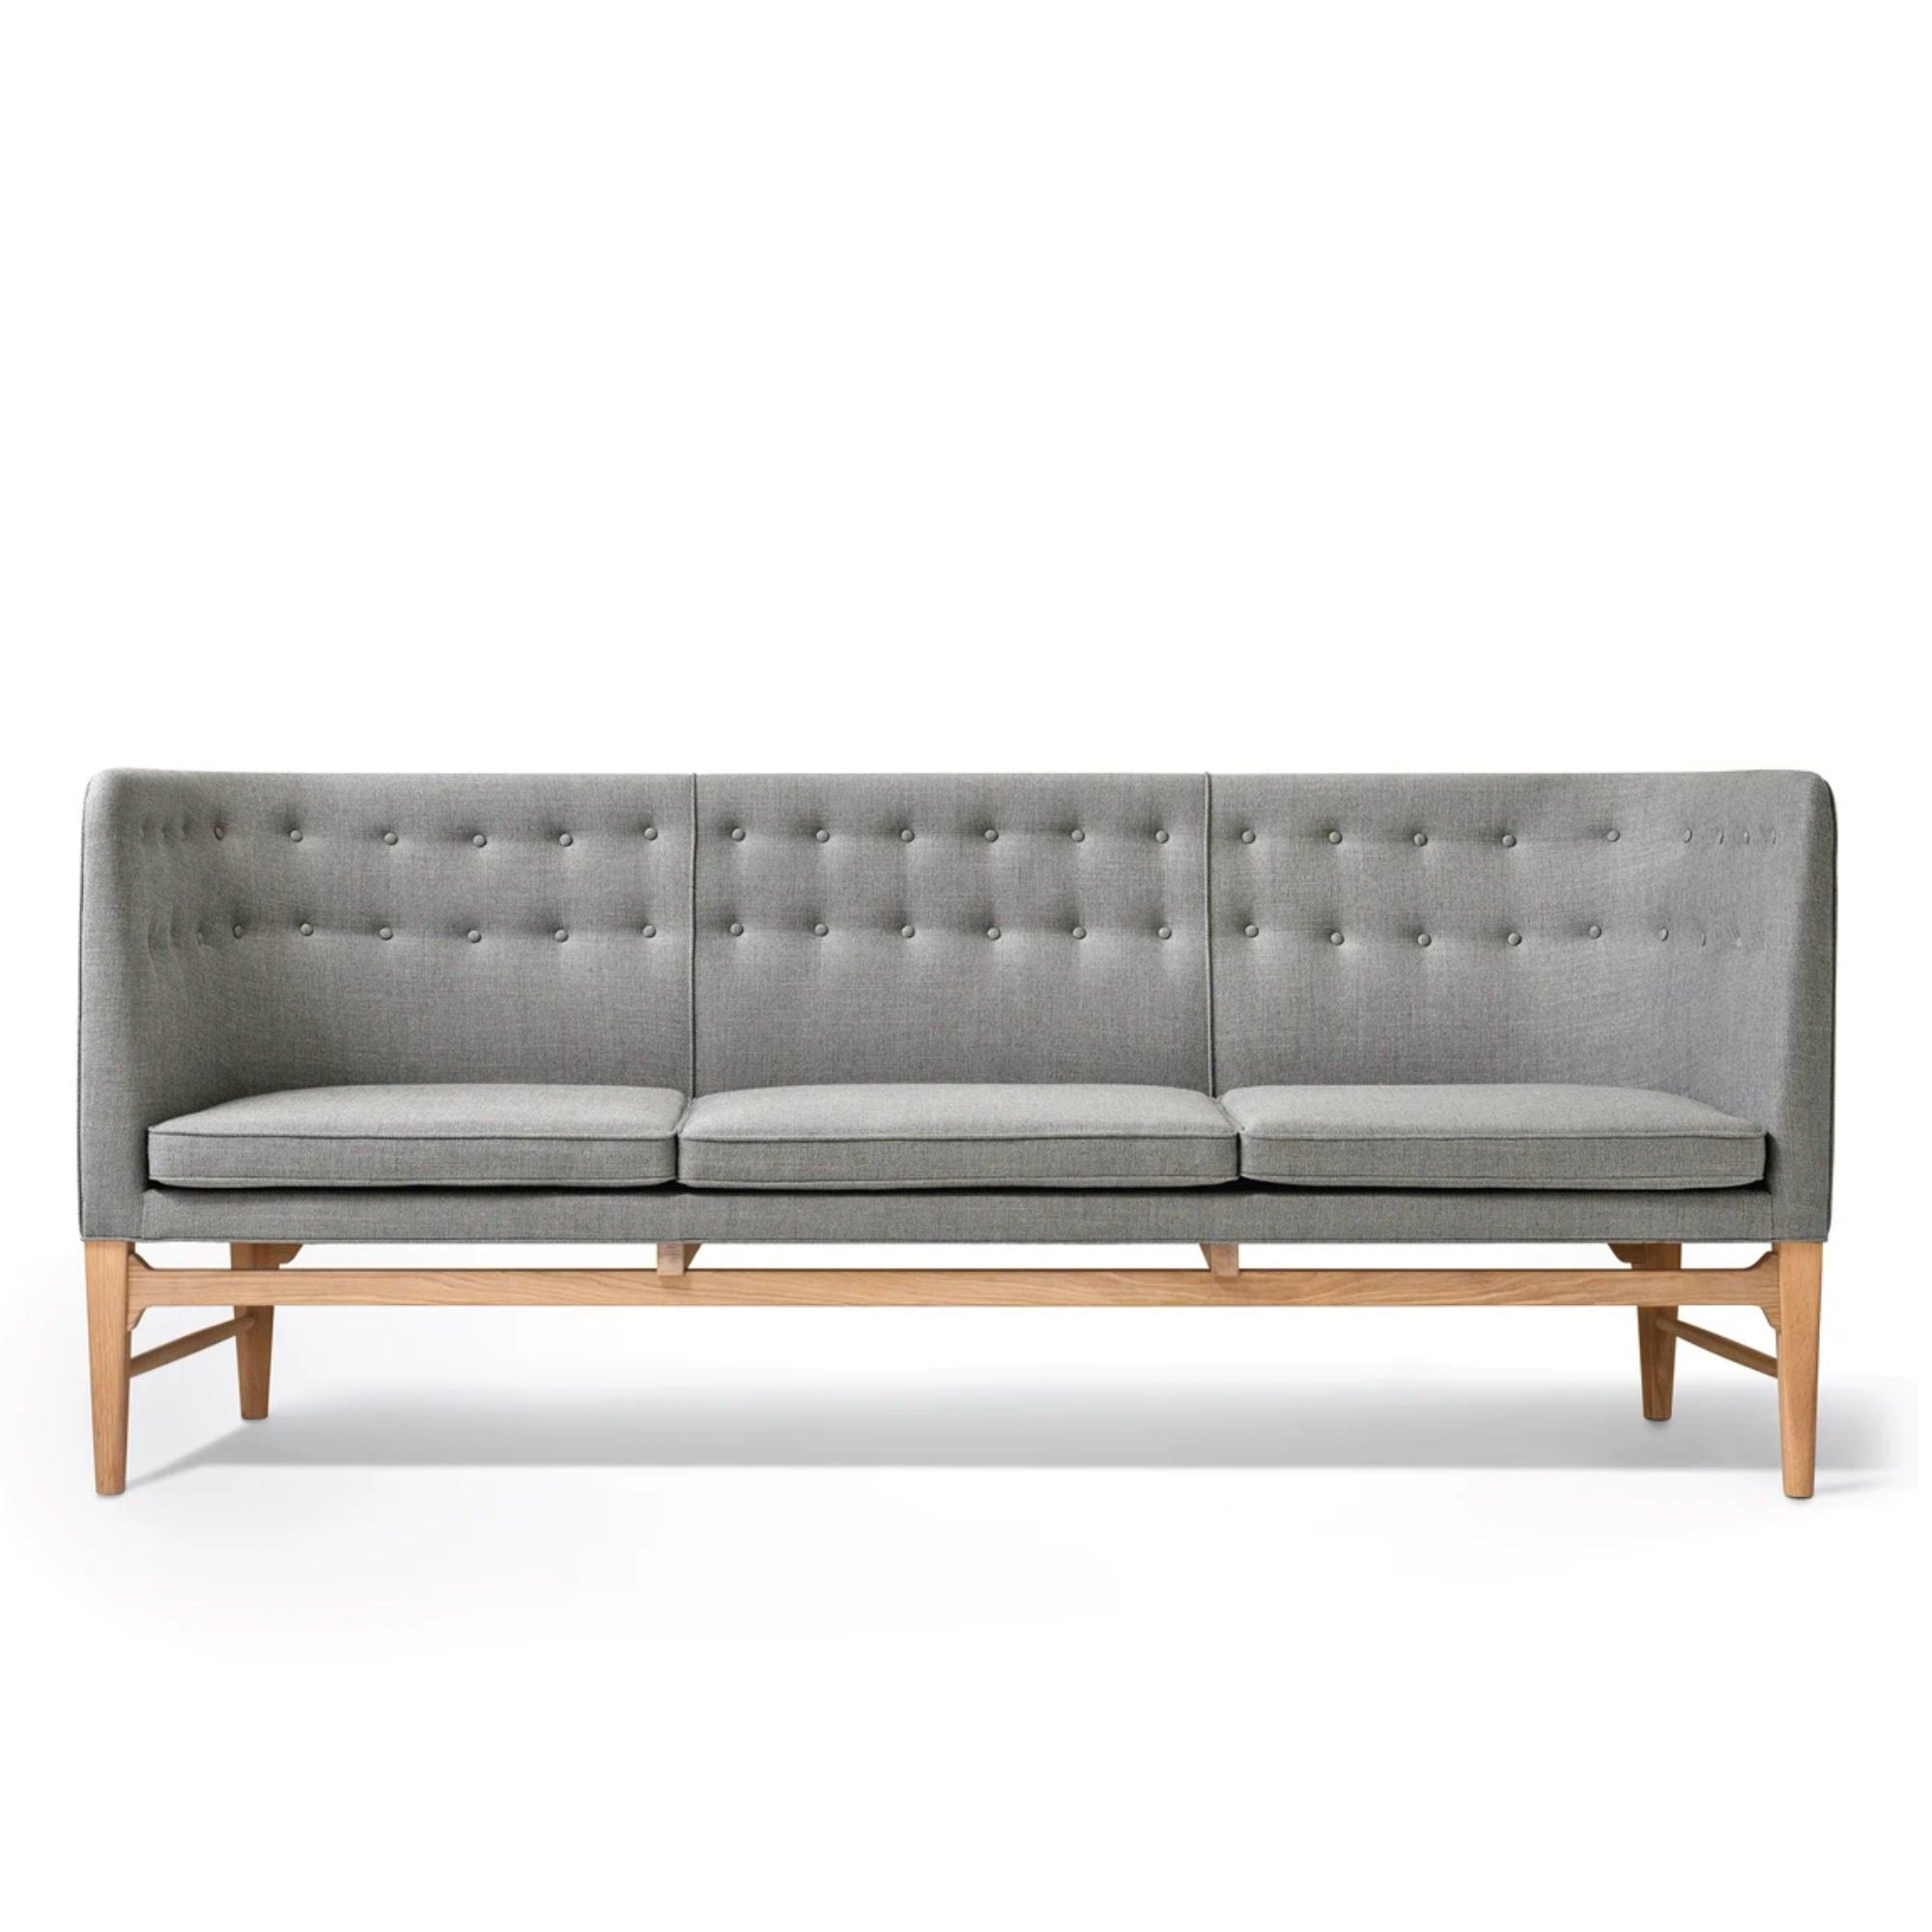 AJ5 Mayor Three Seater Sofa, white oak - Hallingdal 130